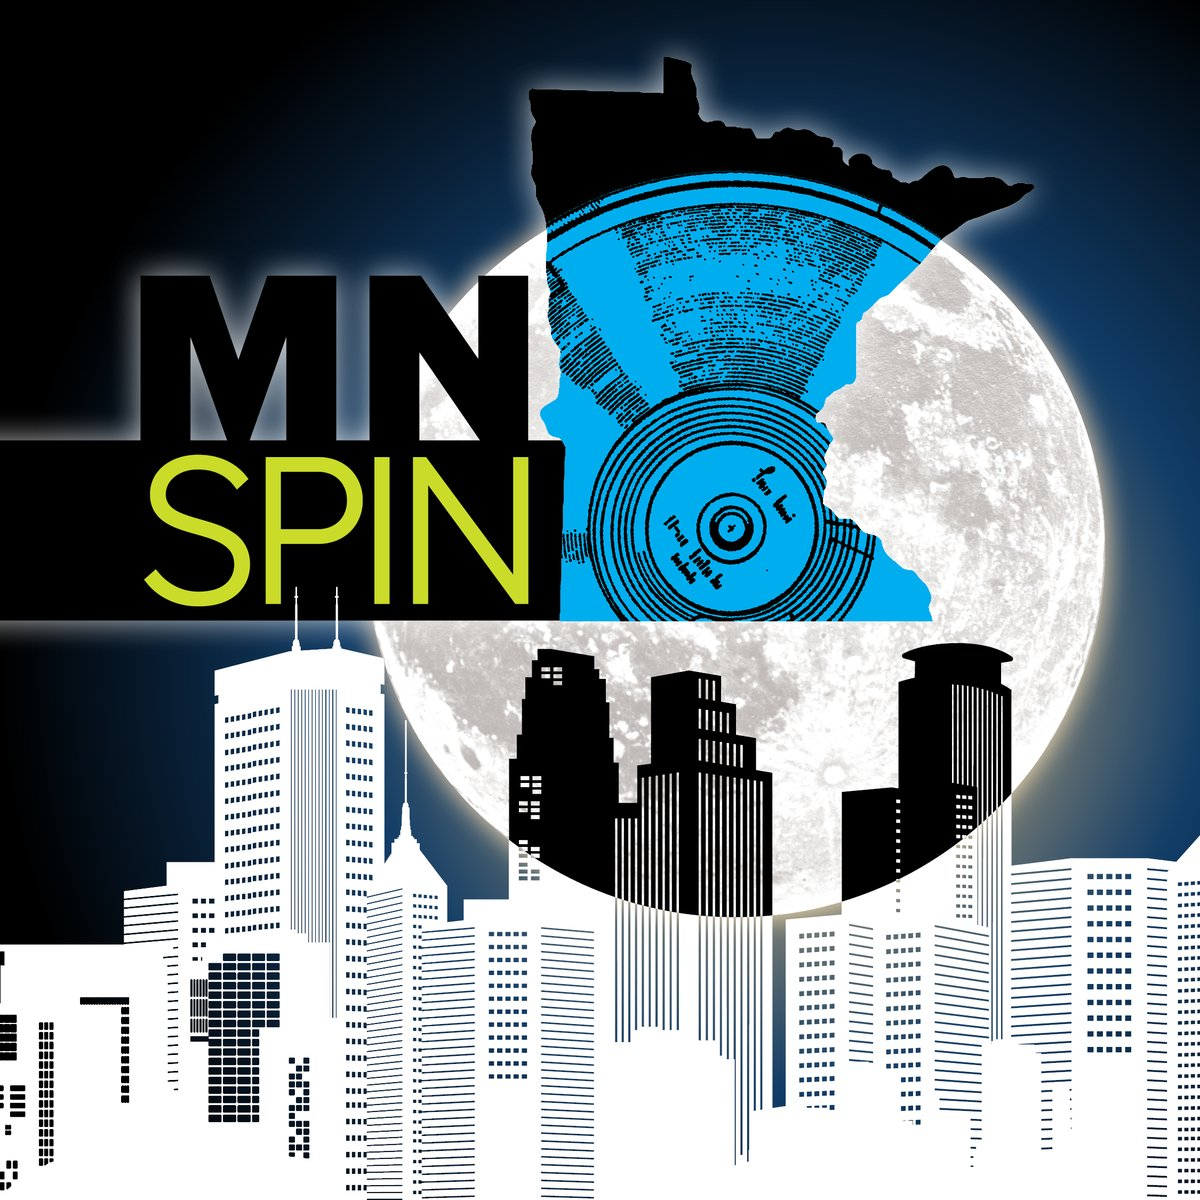 Mike Michel writes songs that are upbeat, groove oriented and filled with memorable vocal melodies, hooky guitar riffs and positive messages of resiliency. Listen to @mikemichelmusic with #MNspin: bit.ly/MikeMichelMNsp…